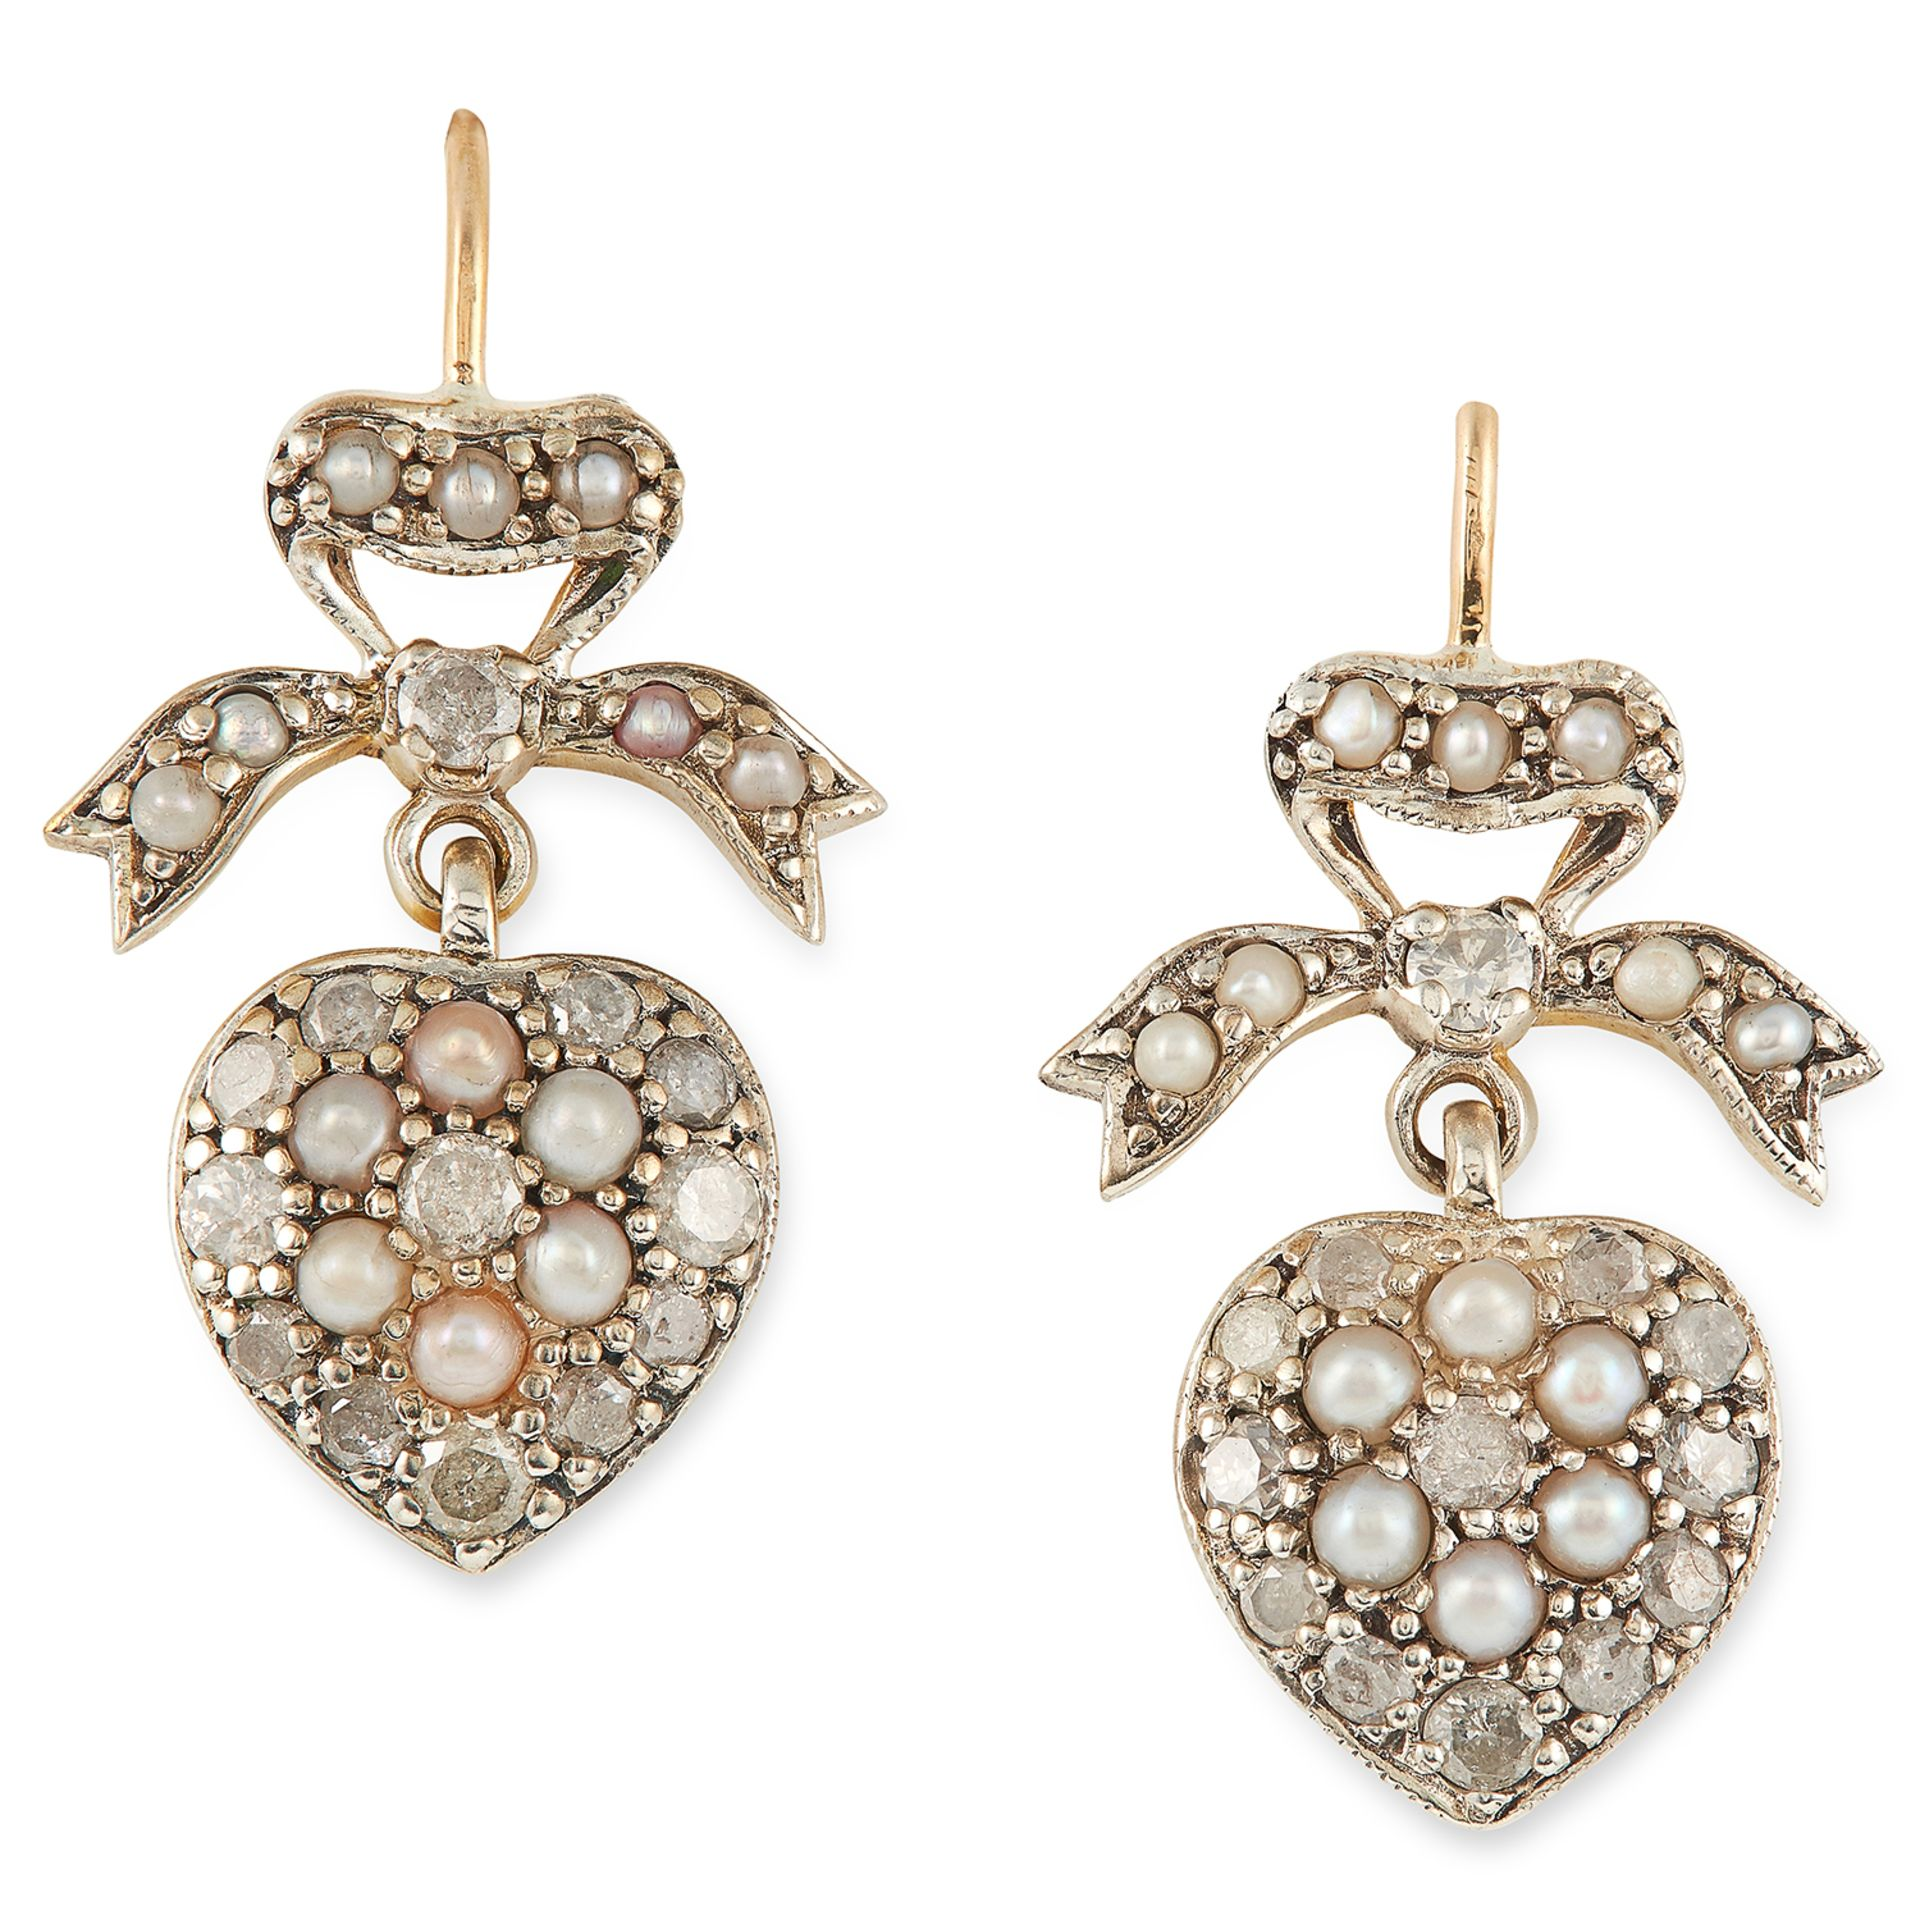 DIAMOND AND PEARL SWEETHEART EARRINGS in ribbon and heart motif set with round cut diamonds and